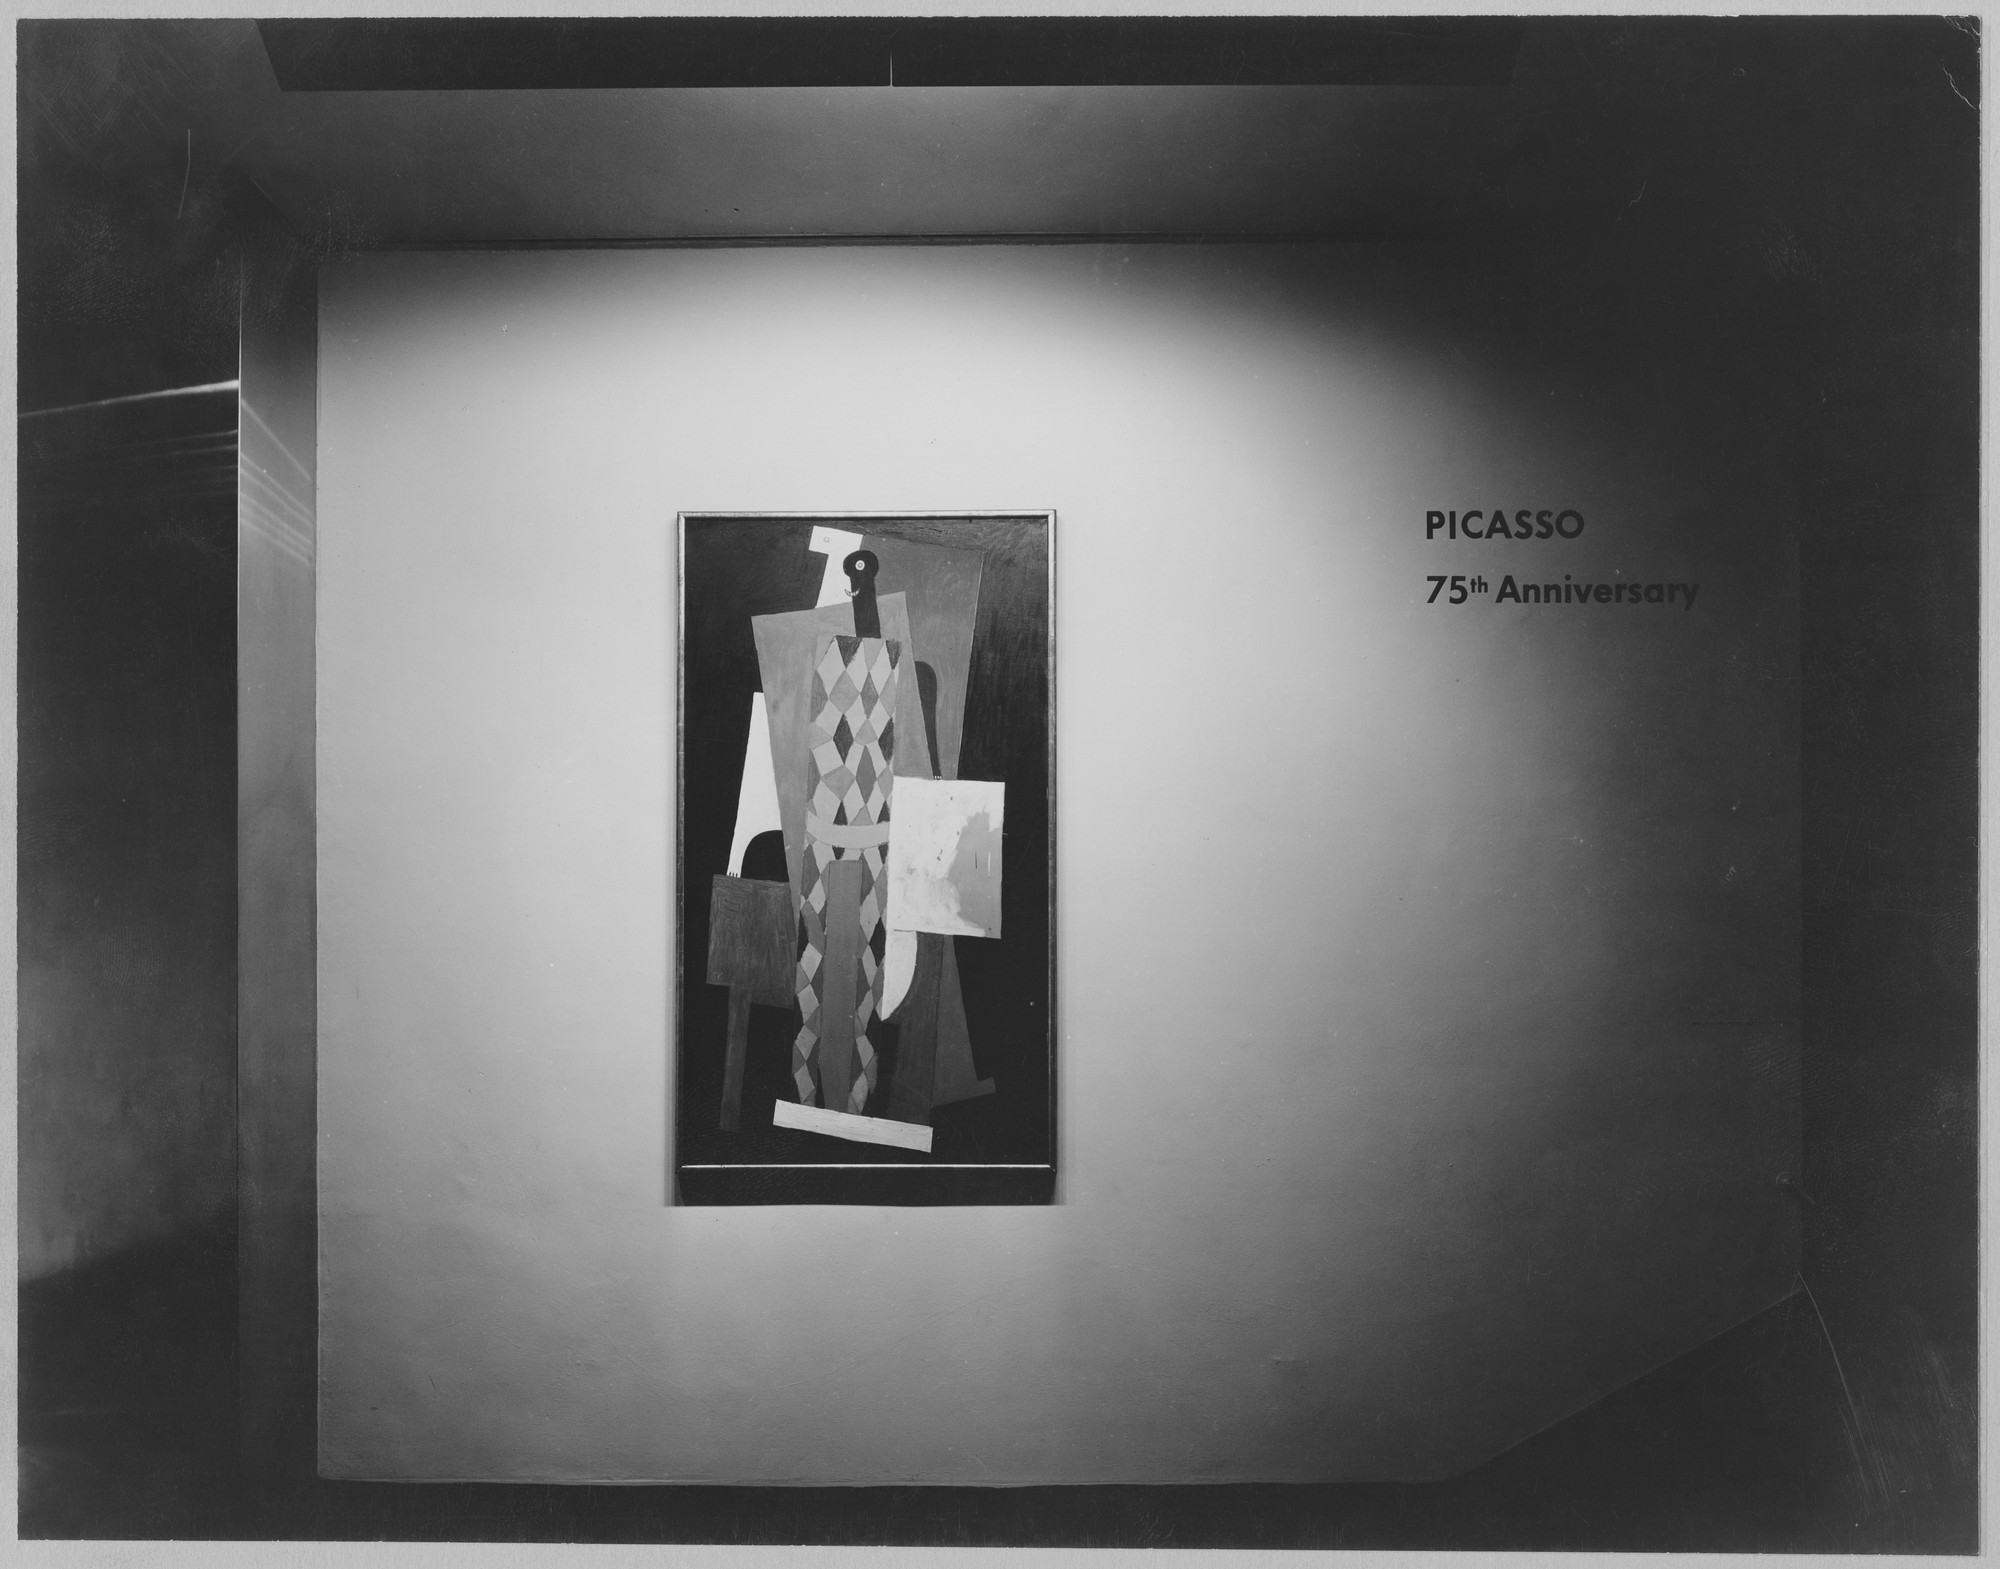 "Installation view of the exhibition, ""Picasso: 75th Anniversary."" May 4, 1957–August 25, 1957 (first floor and auditorium); May 22, 1957–September 8, 1957 (third floor). Photographic Archive. The Museum of Modern Art Archives, New York. IN619.1. Photograph by Soichi Sunami."